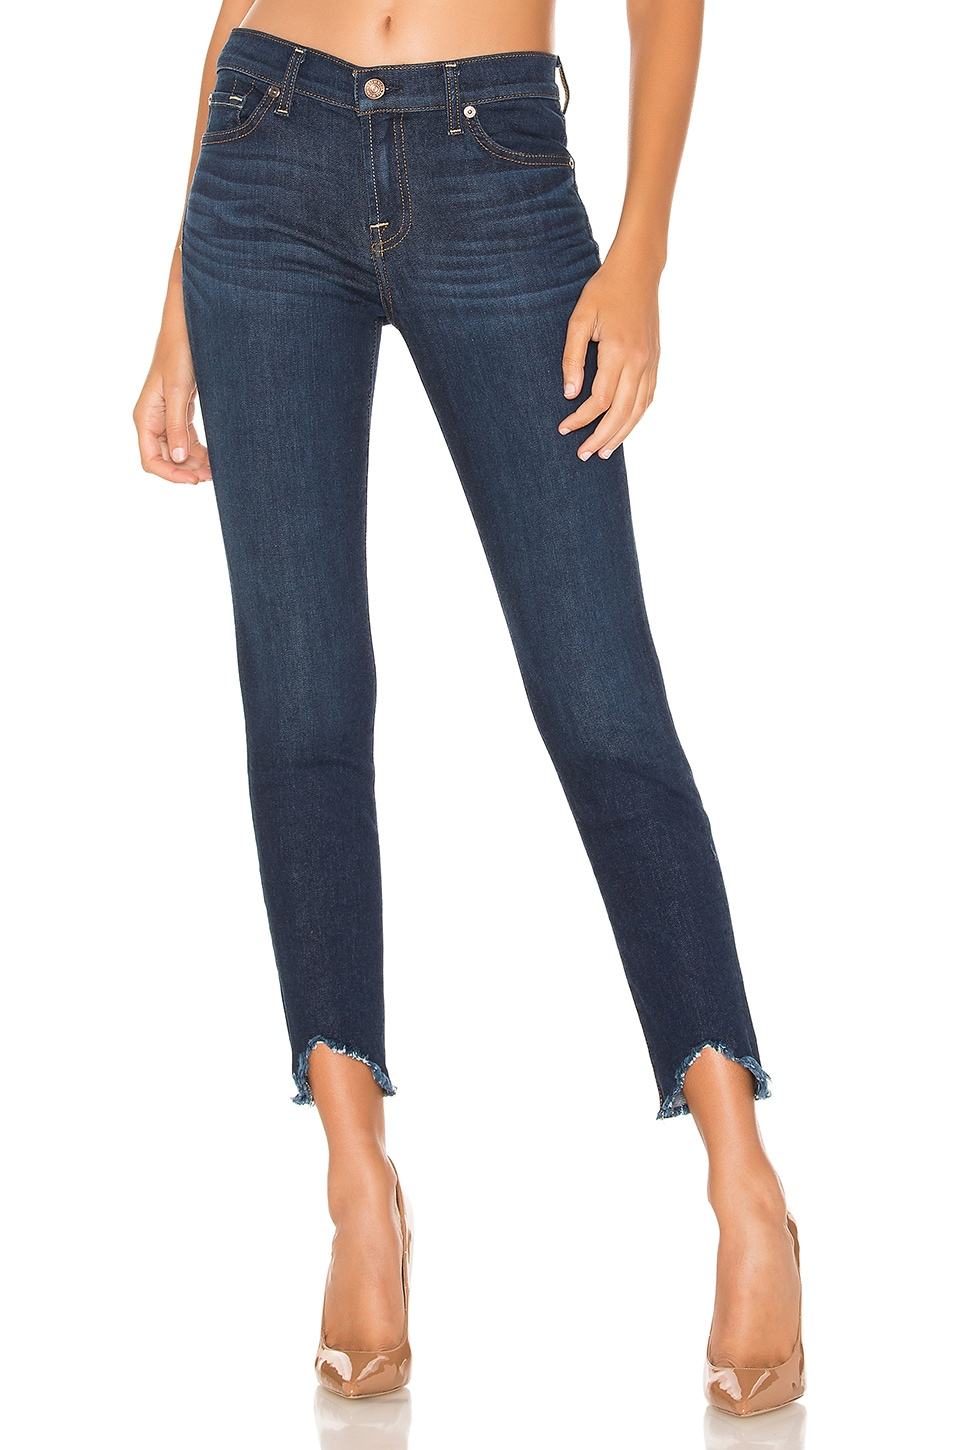 7 For All Mankind Ankle Skinny in Serrano Night